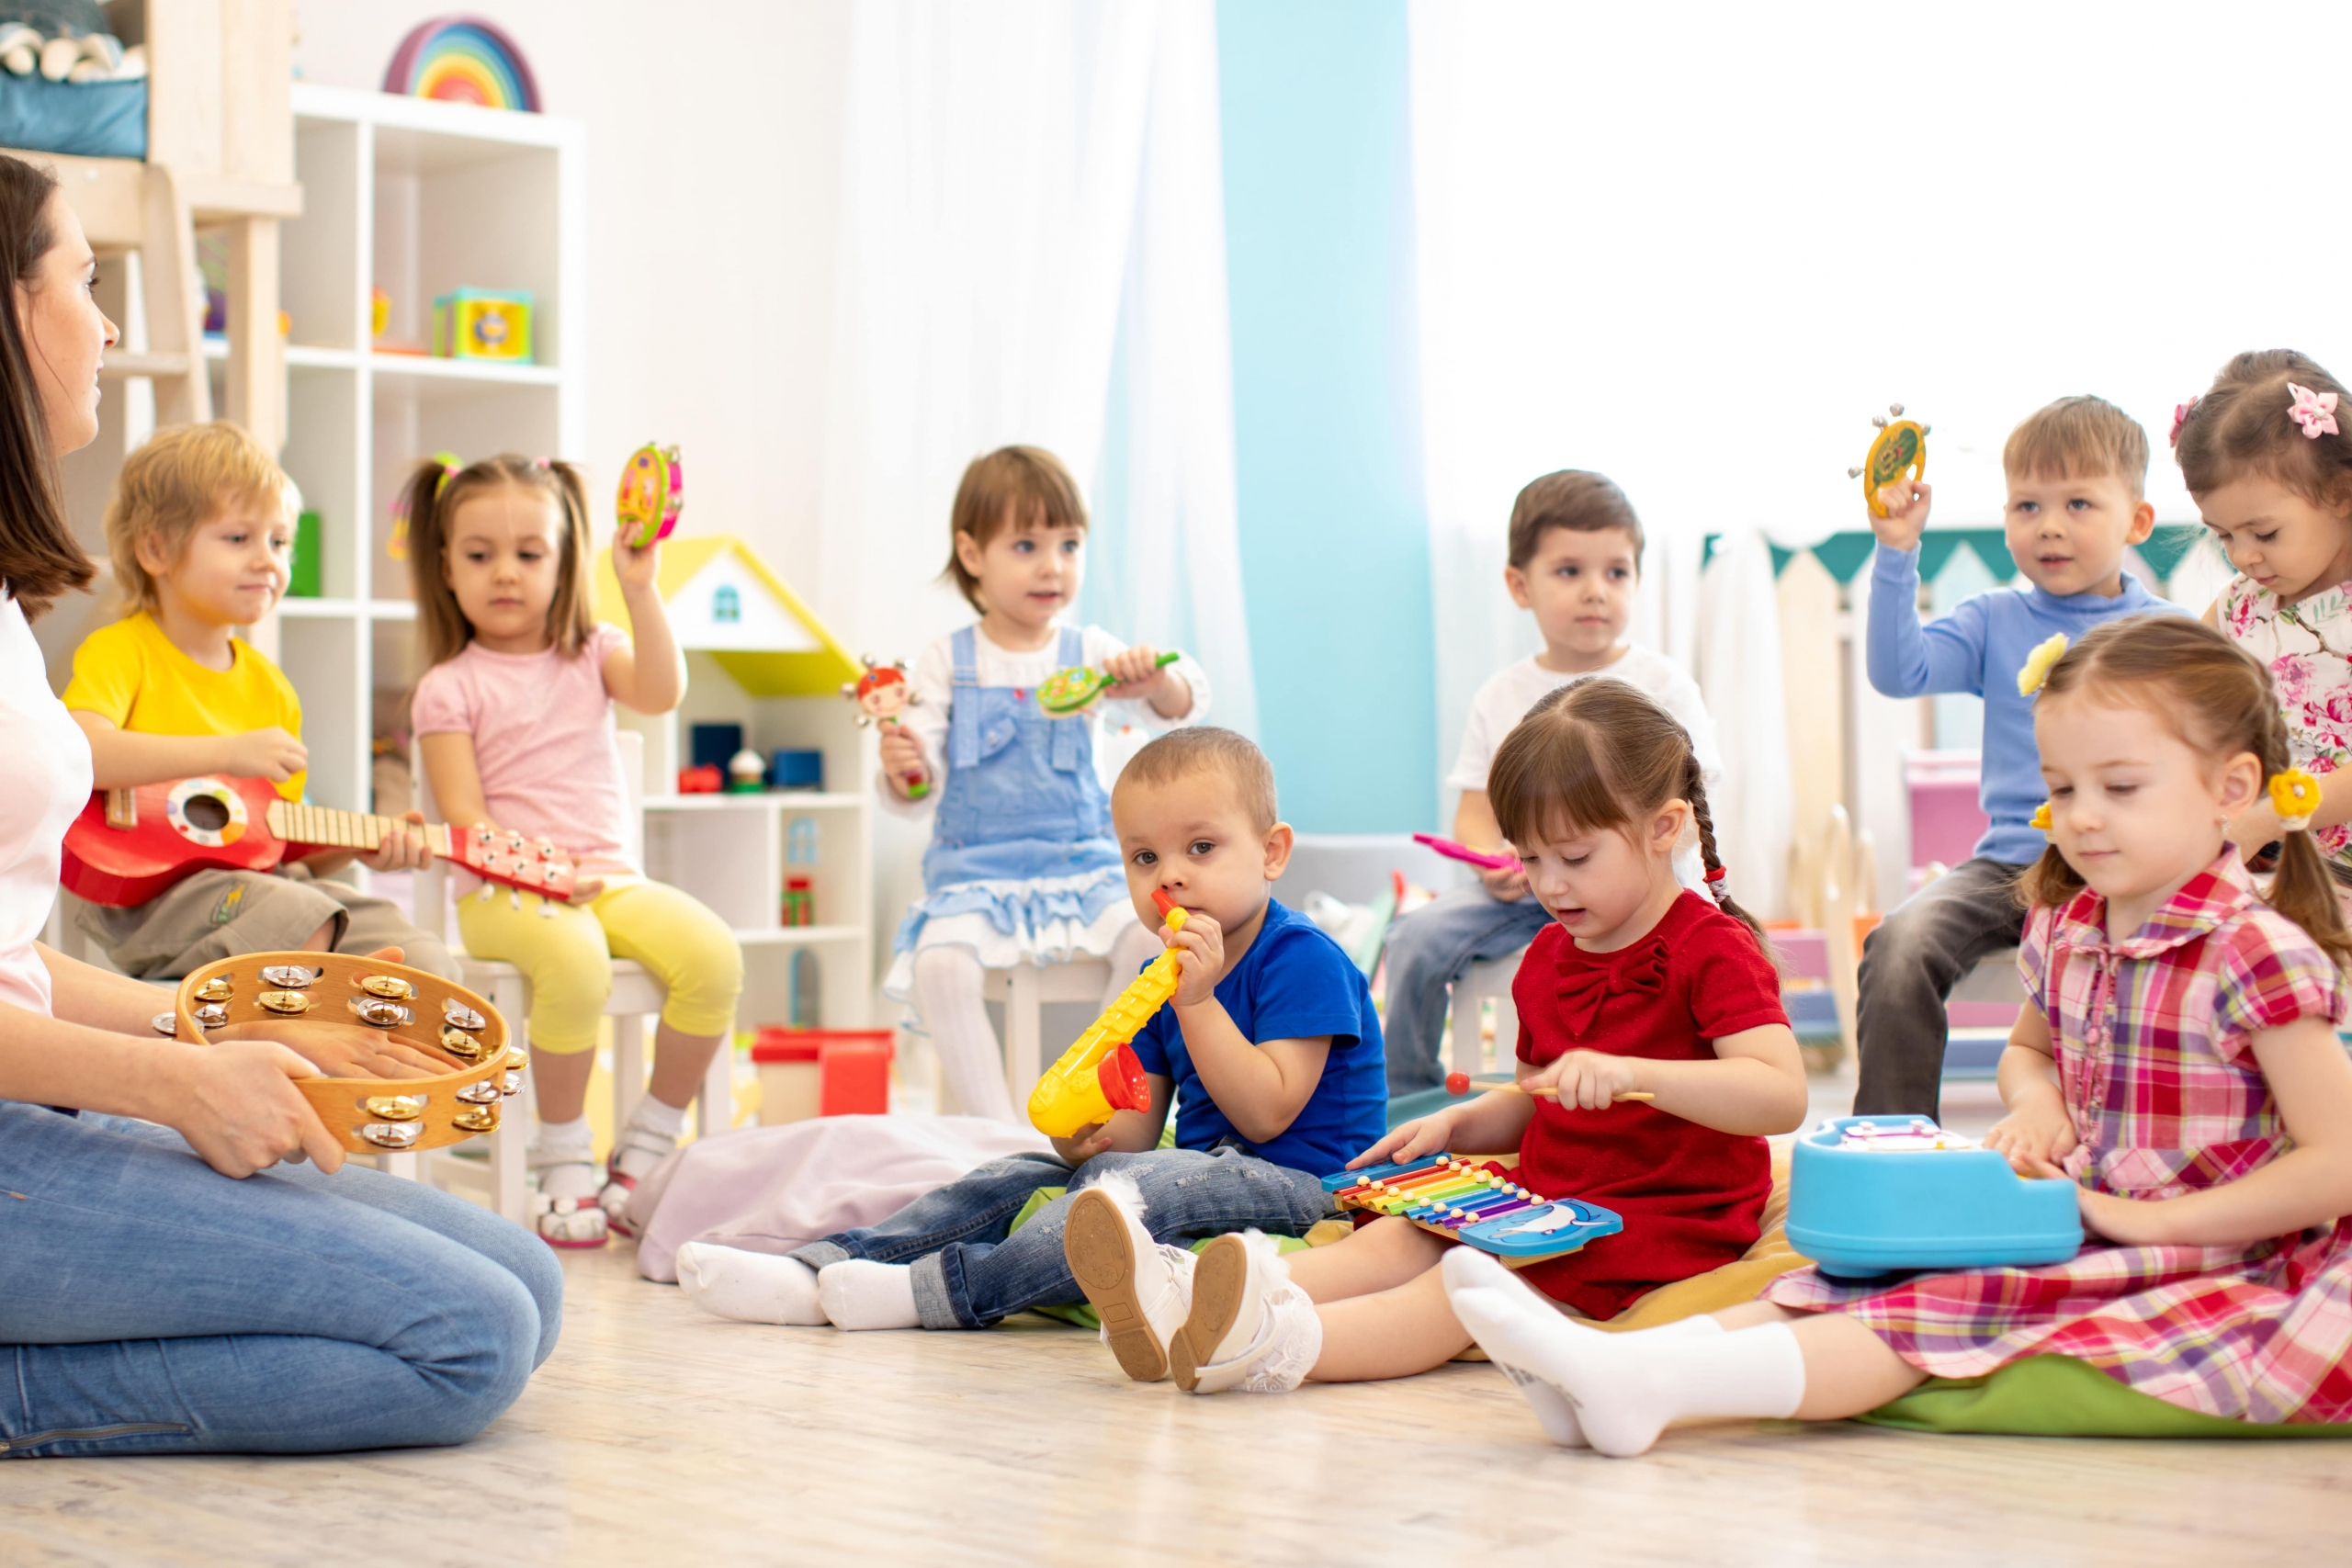 Starting a Childcare Business